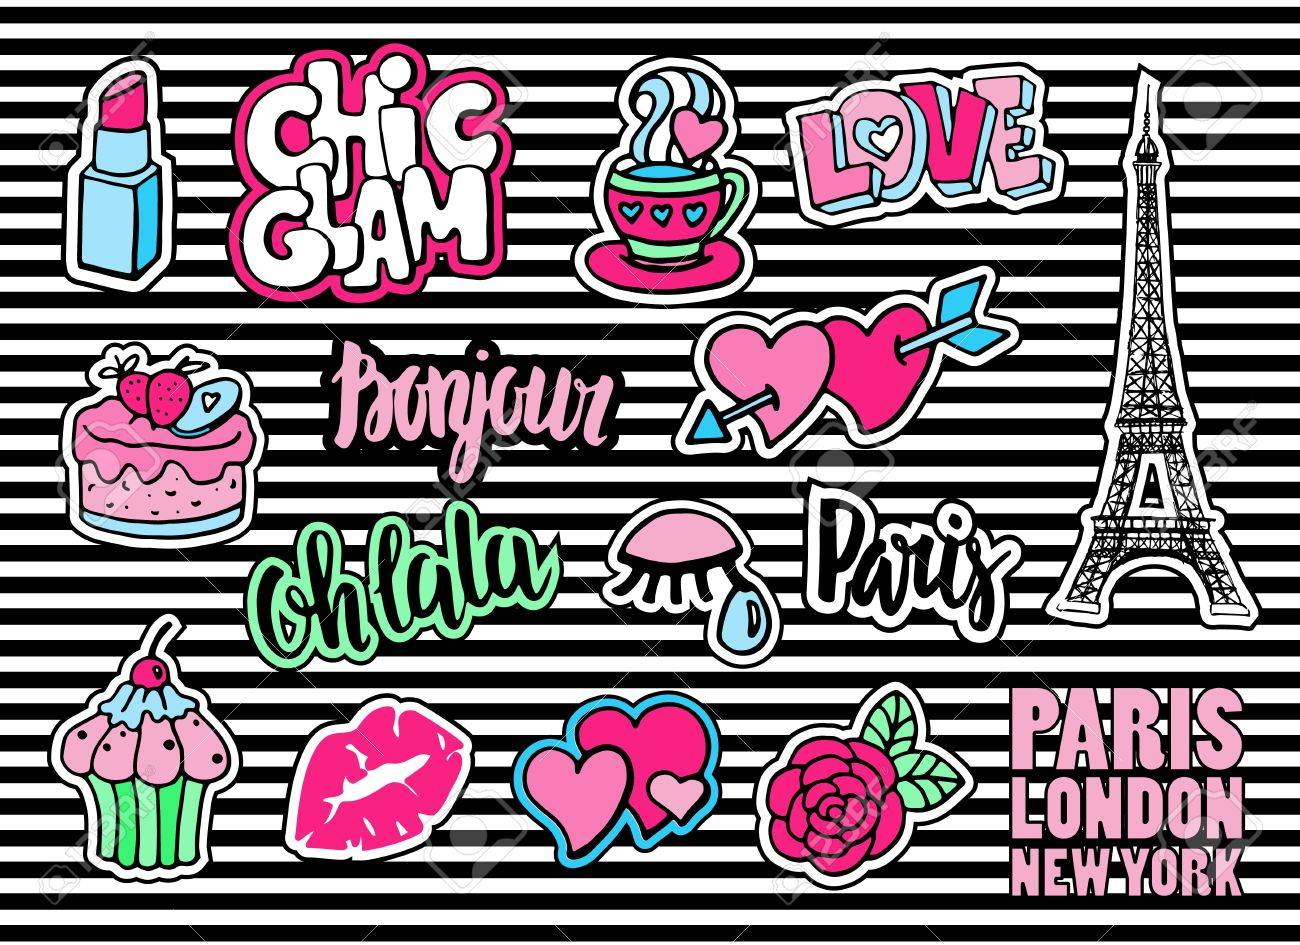 Cute fashion patch badges with lips, hearts, Eiffel tower, flower, cake, eye, lipstick. Paris romantic design. Set of doodle stickers, pins, in cartoon 80s-90s comic style. Sign hello in french. - 66091199